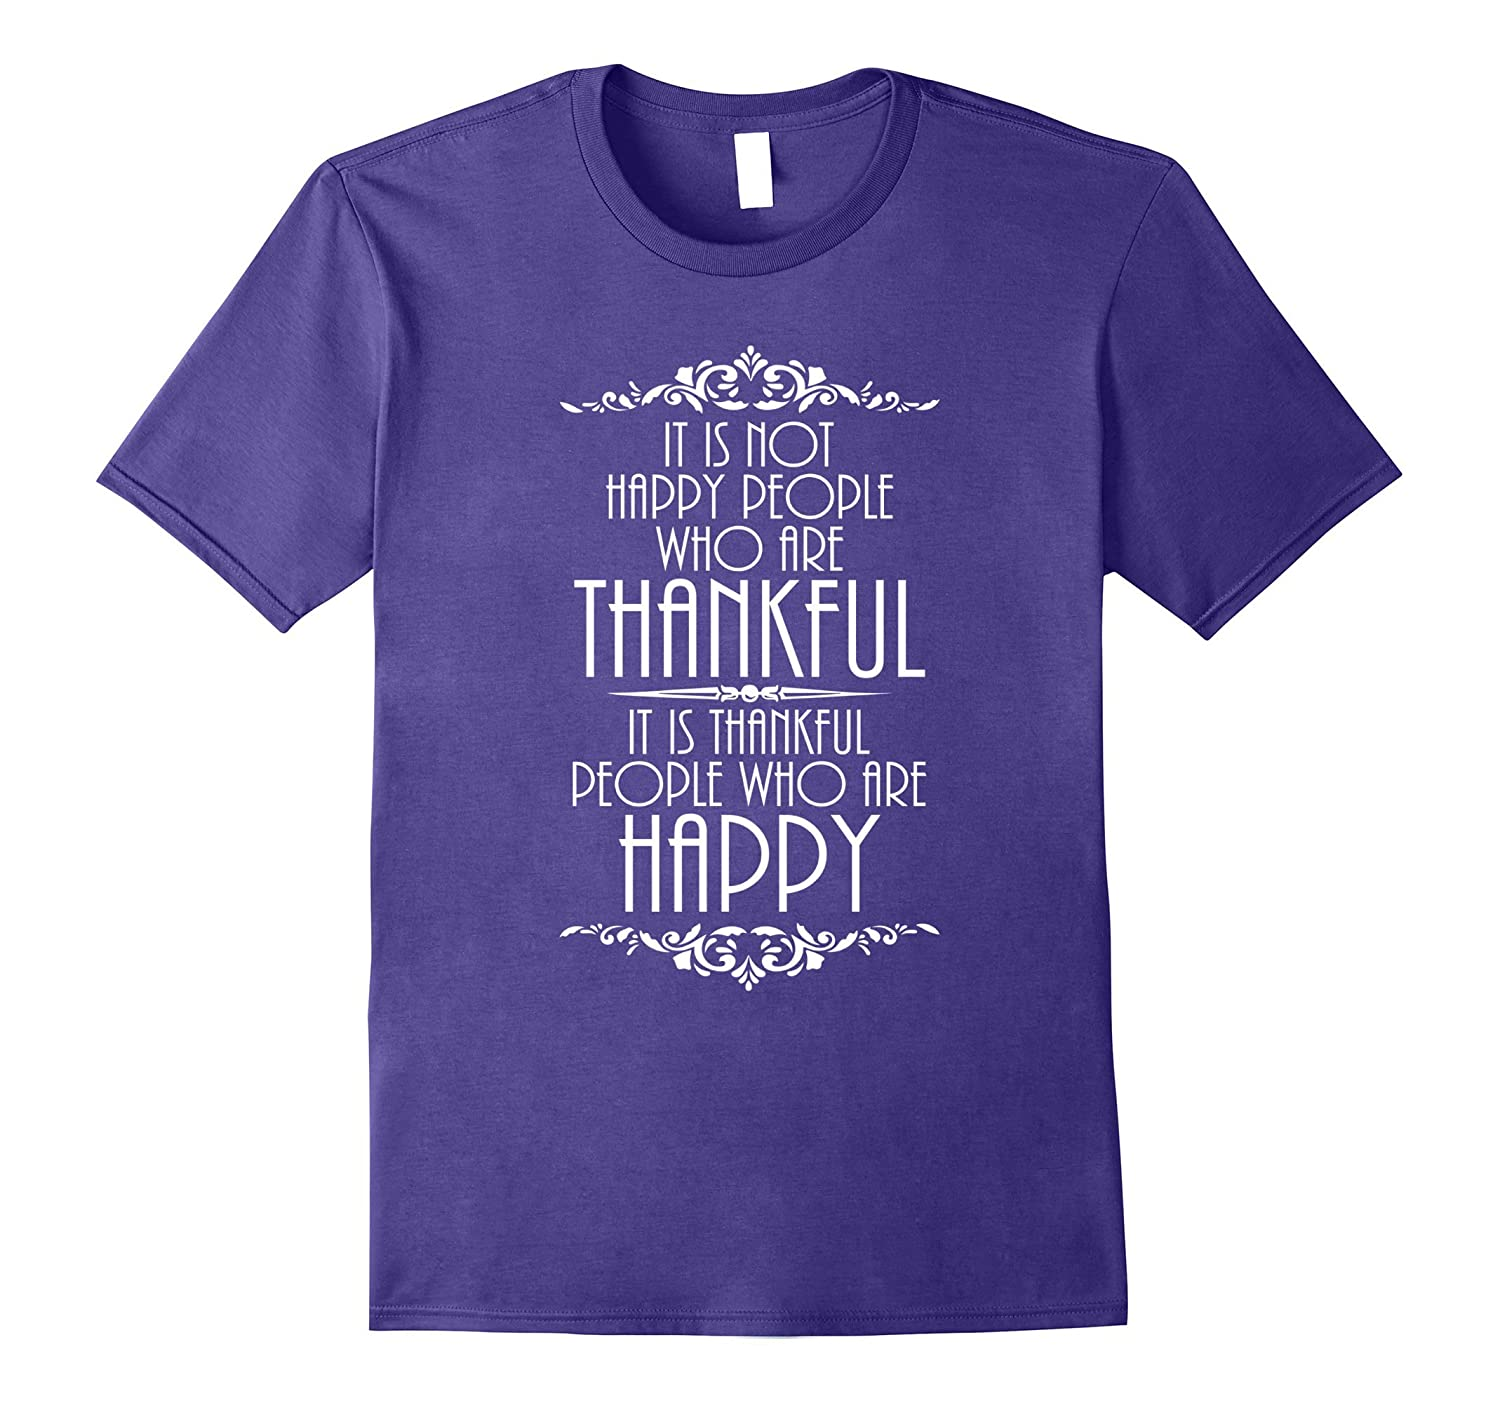 Thankful People are Happy Inspirational Thanksgiving T Shirt-Art